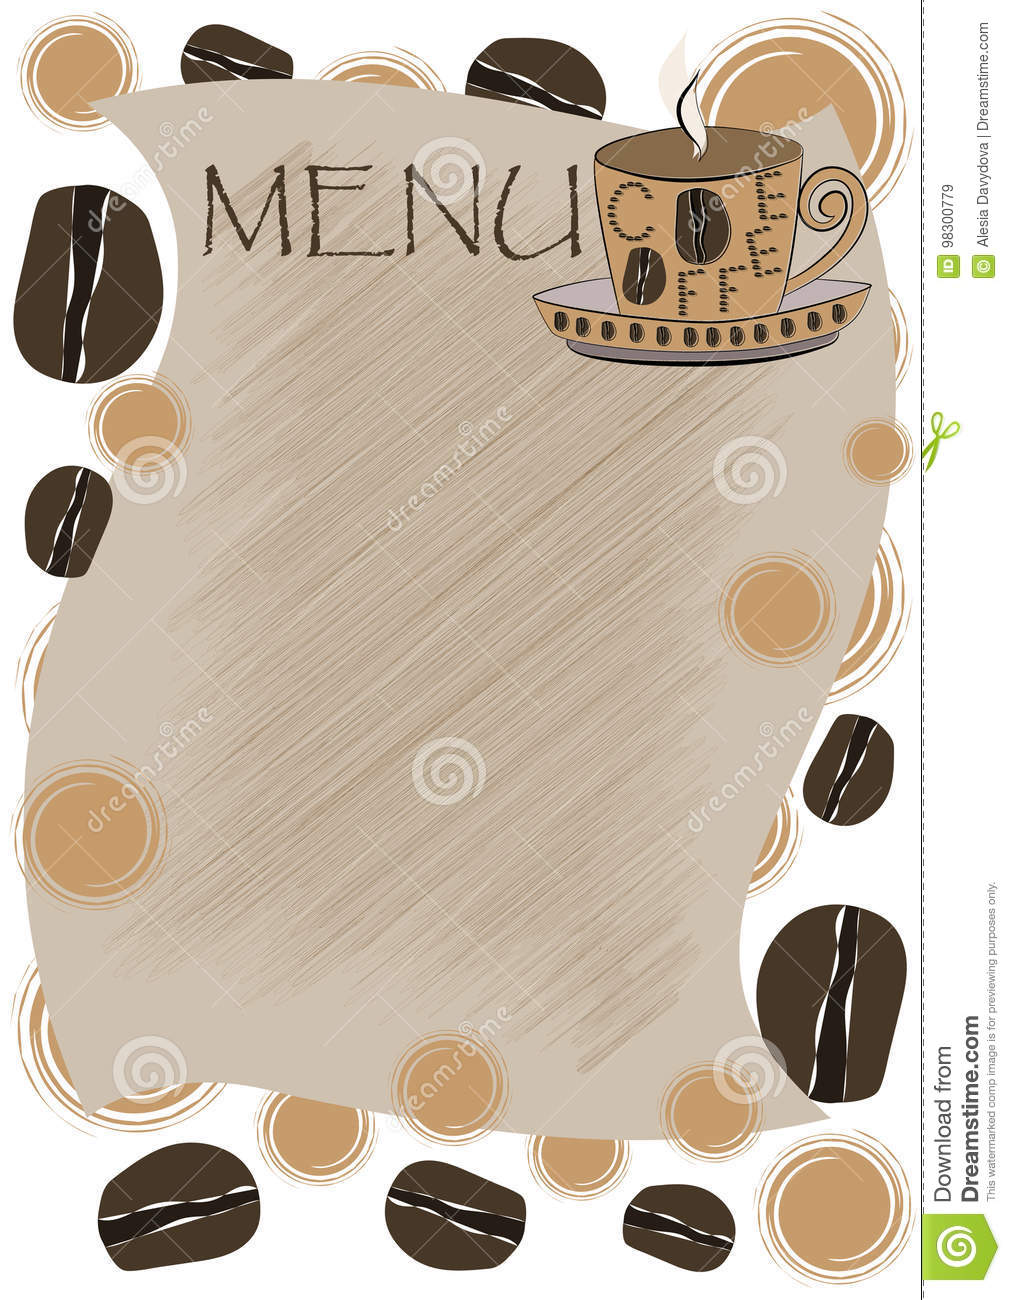 Template menu for a coffee house.Crack on a leaf background and coffee beans.